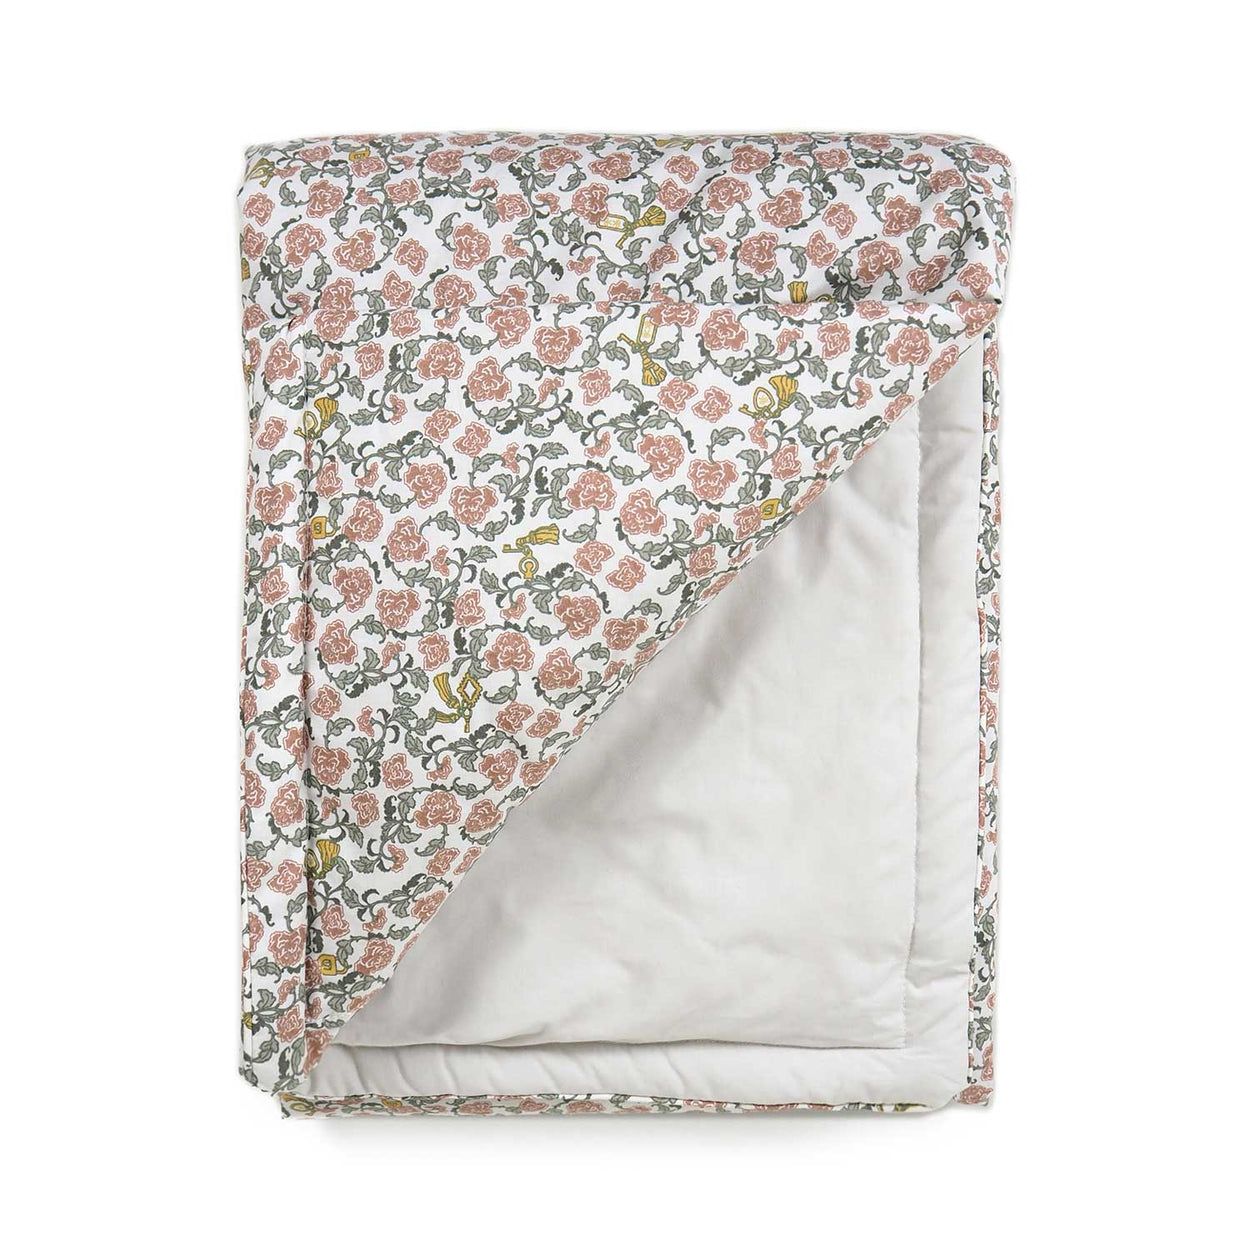 Garbo&Friends filled blanket with a floral vine pattern on one side